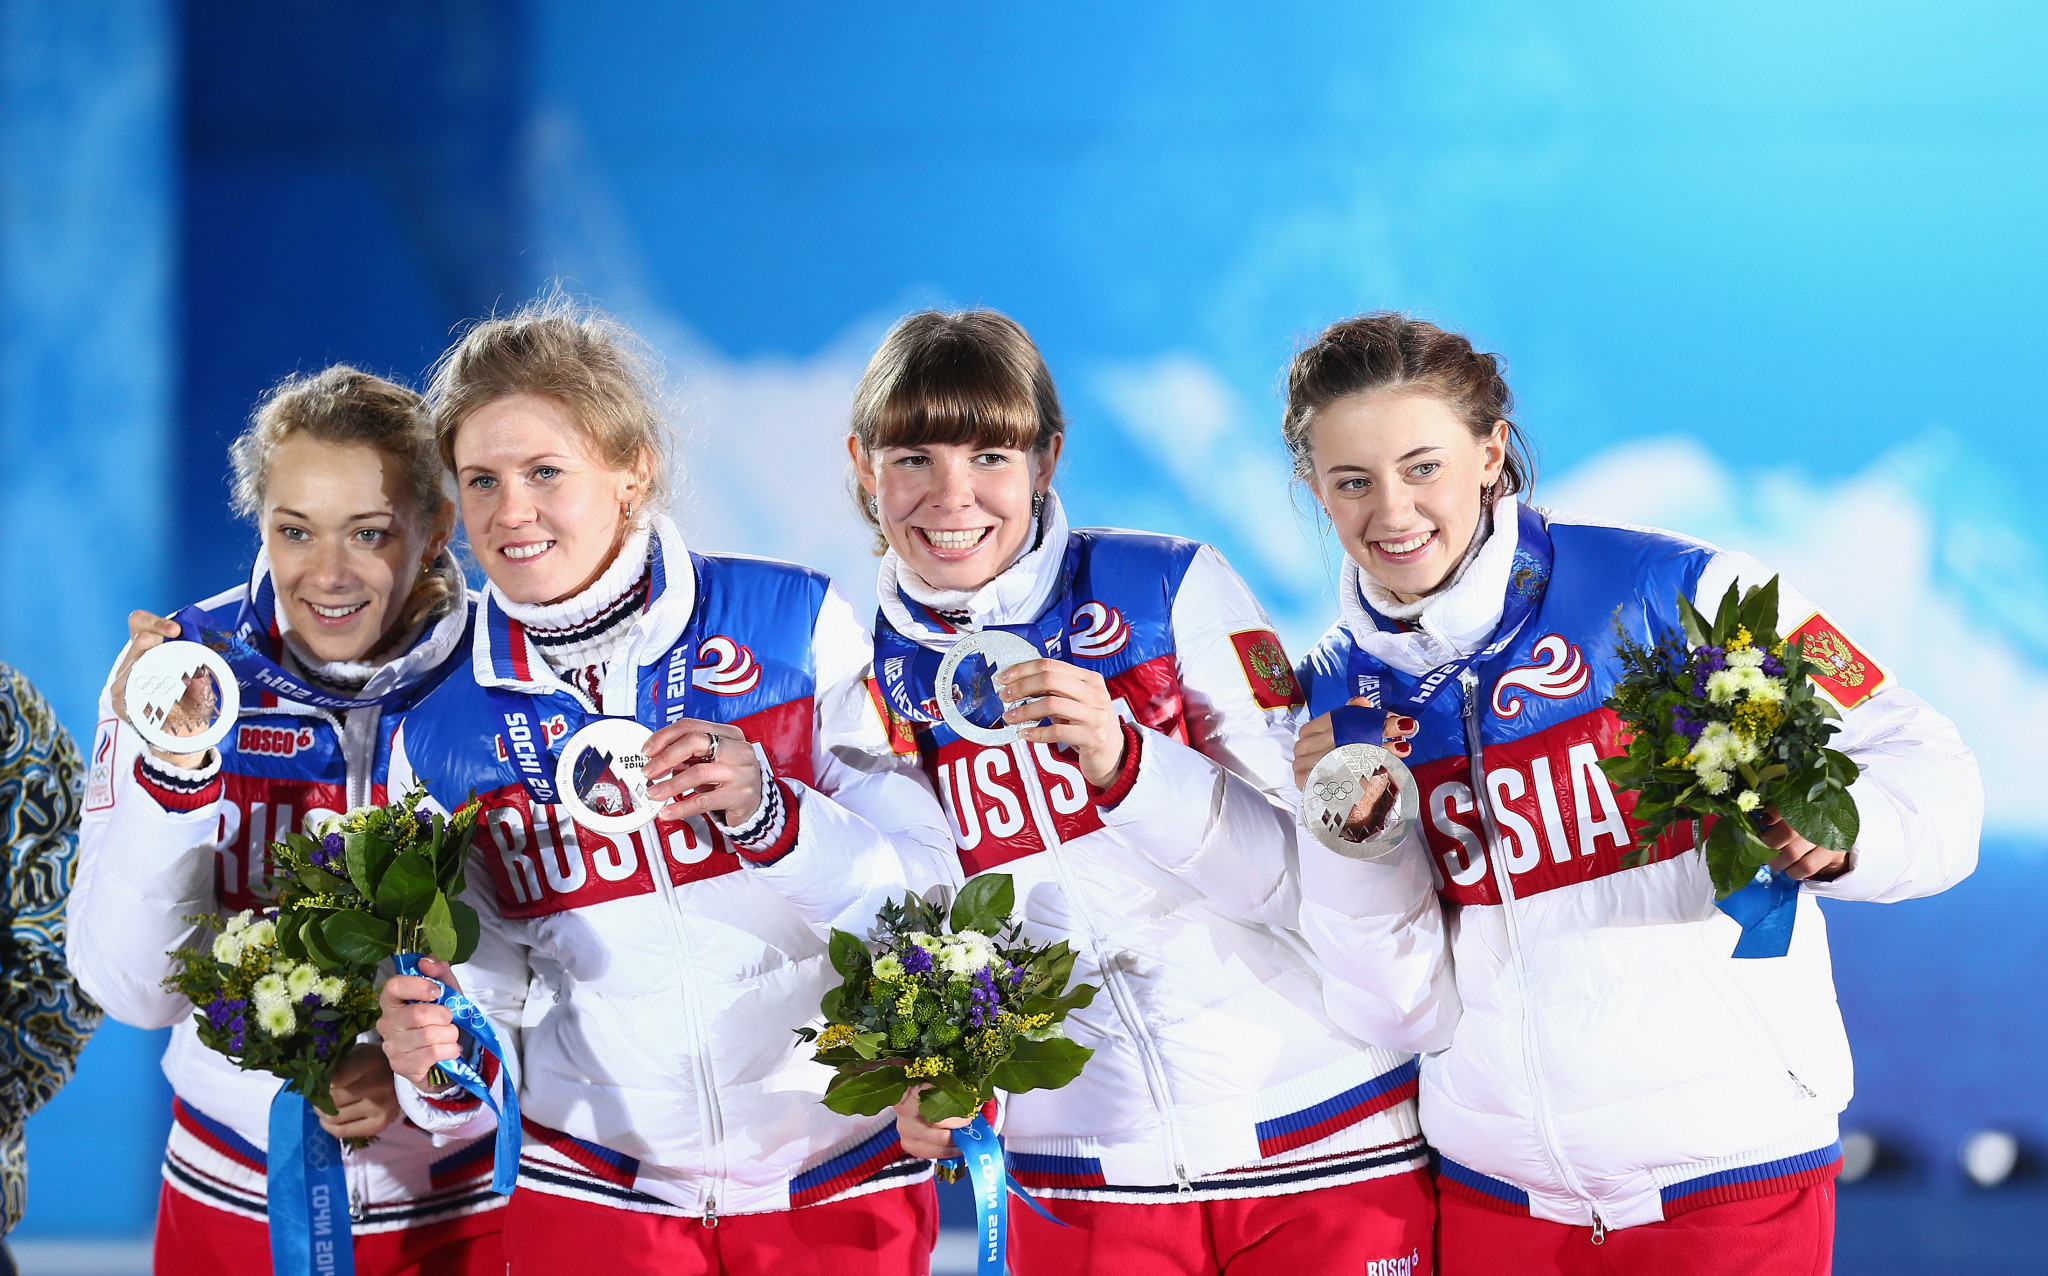 Olga Zaitseva, left, was convicted of a doping offence by Sochi 214 but her team-mates in the 4x6km relay at the 2014 Olympics in Sochi, Yana Romanova, second left, and Olga Vilukhina, right, were cleared ©Getty Images